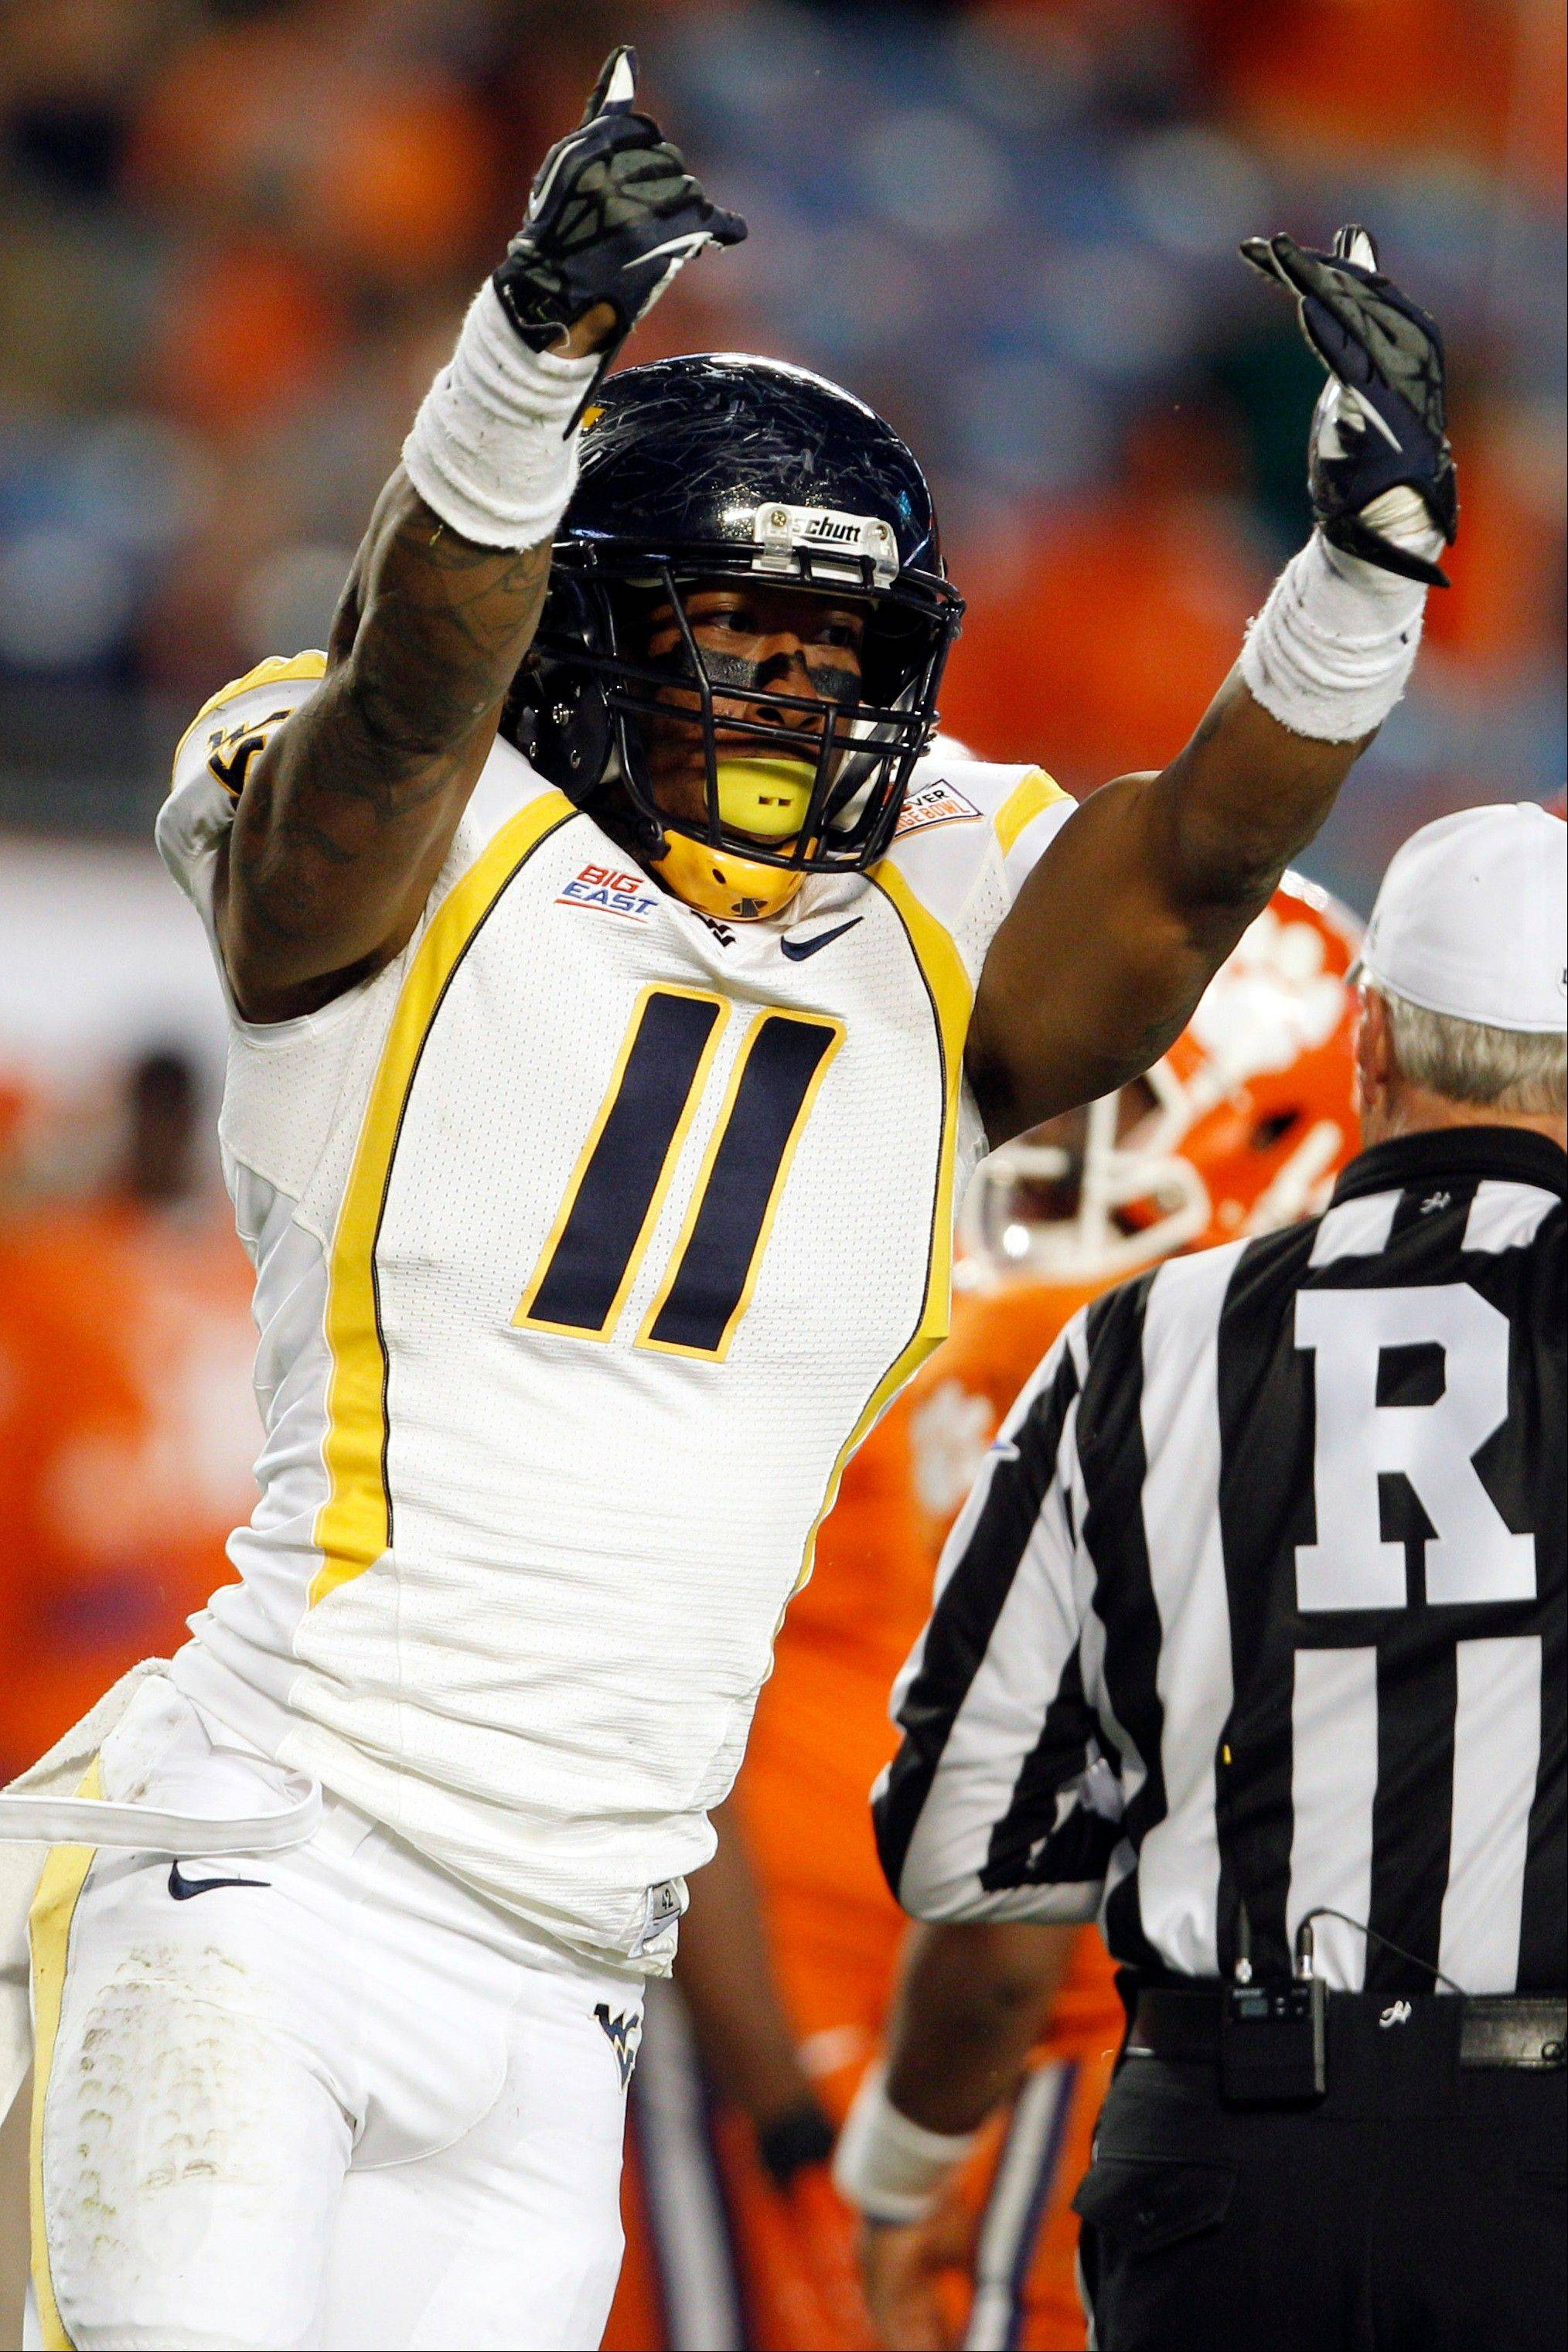 West Virginia defensive end Bruce Irvin was selected as the 15th pick overall by the Seattle Seahawks in the first round of the NFL Draft at Radio City Music Hall.